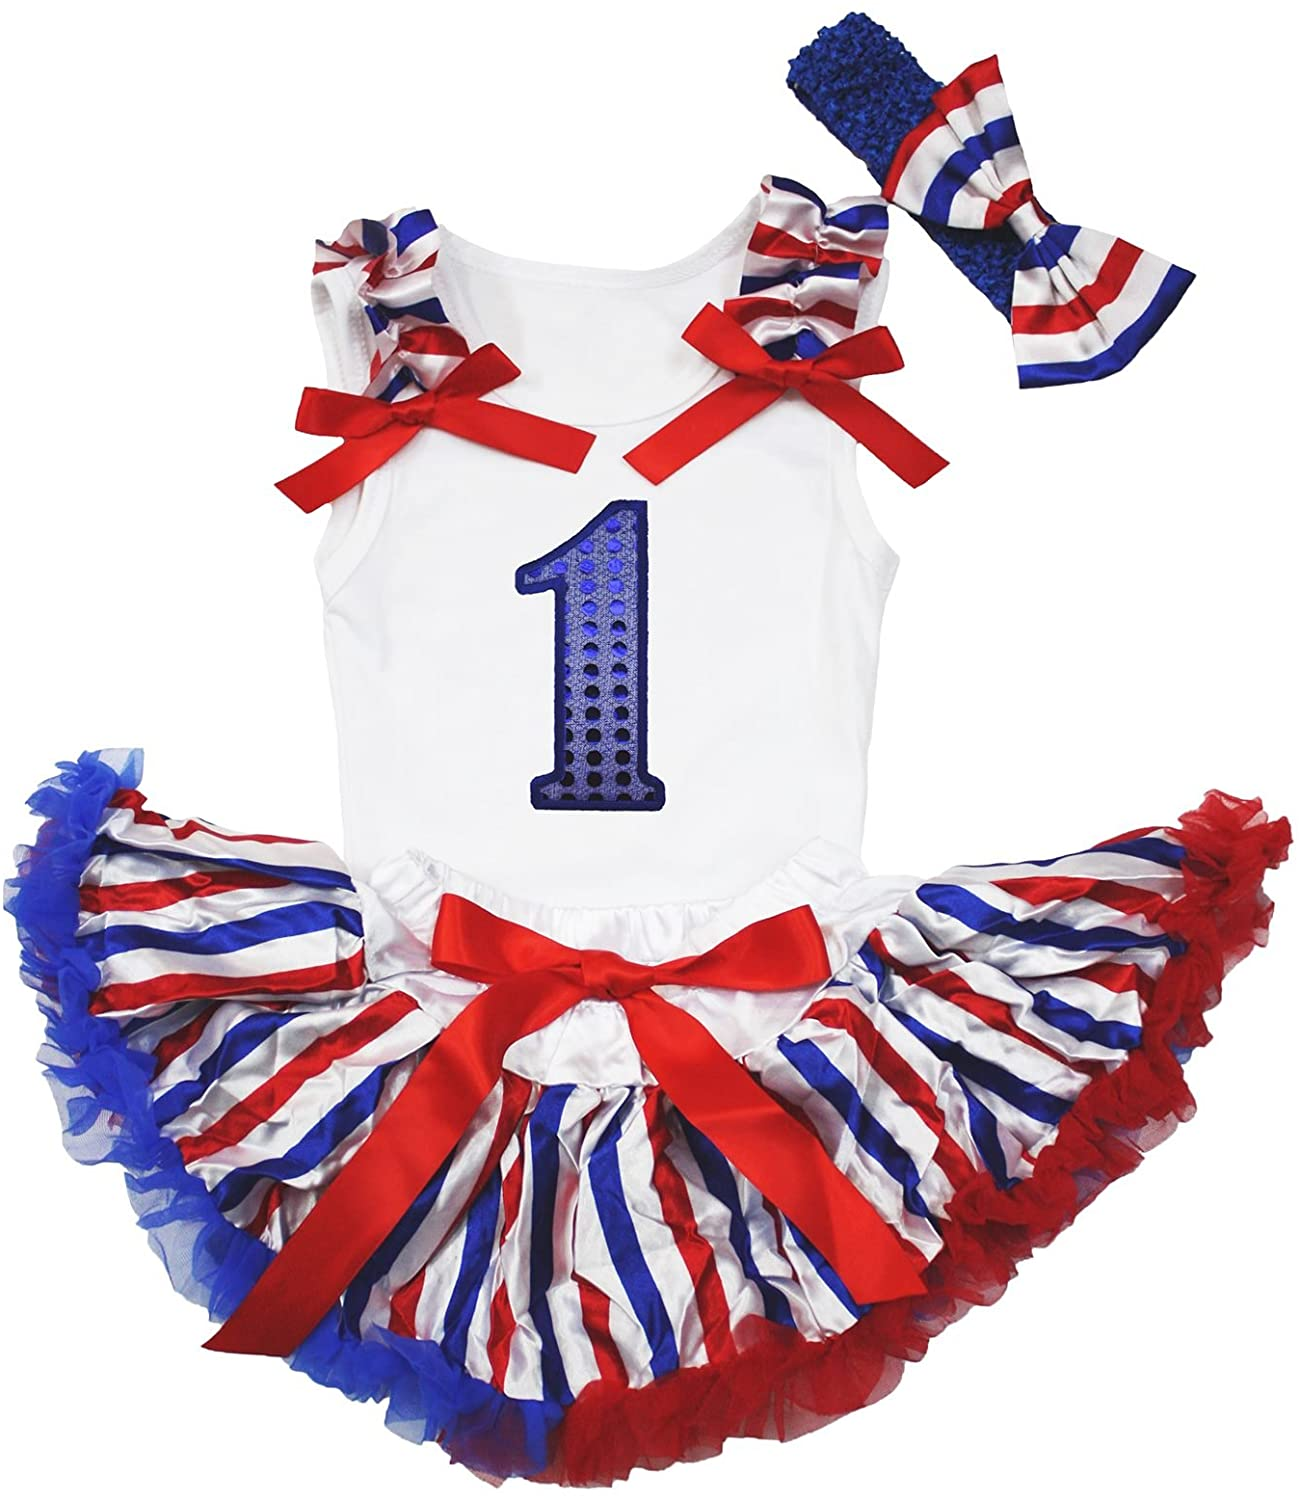 Petitebella Blue Sequins 1st White Shirt RWB Striped Baby Skirt Outfit 3-12m